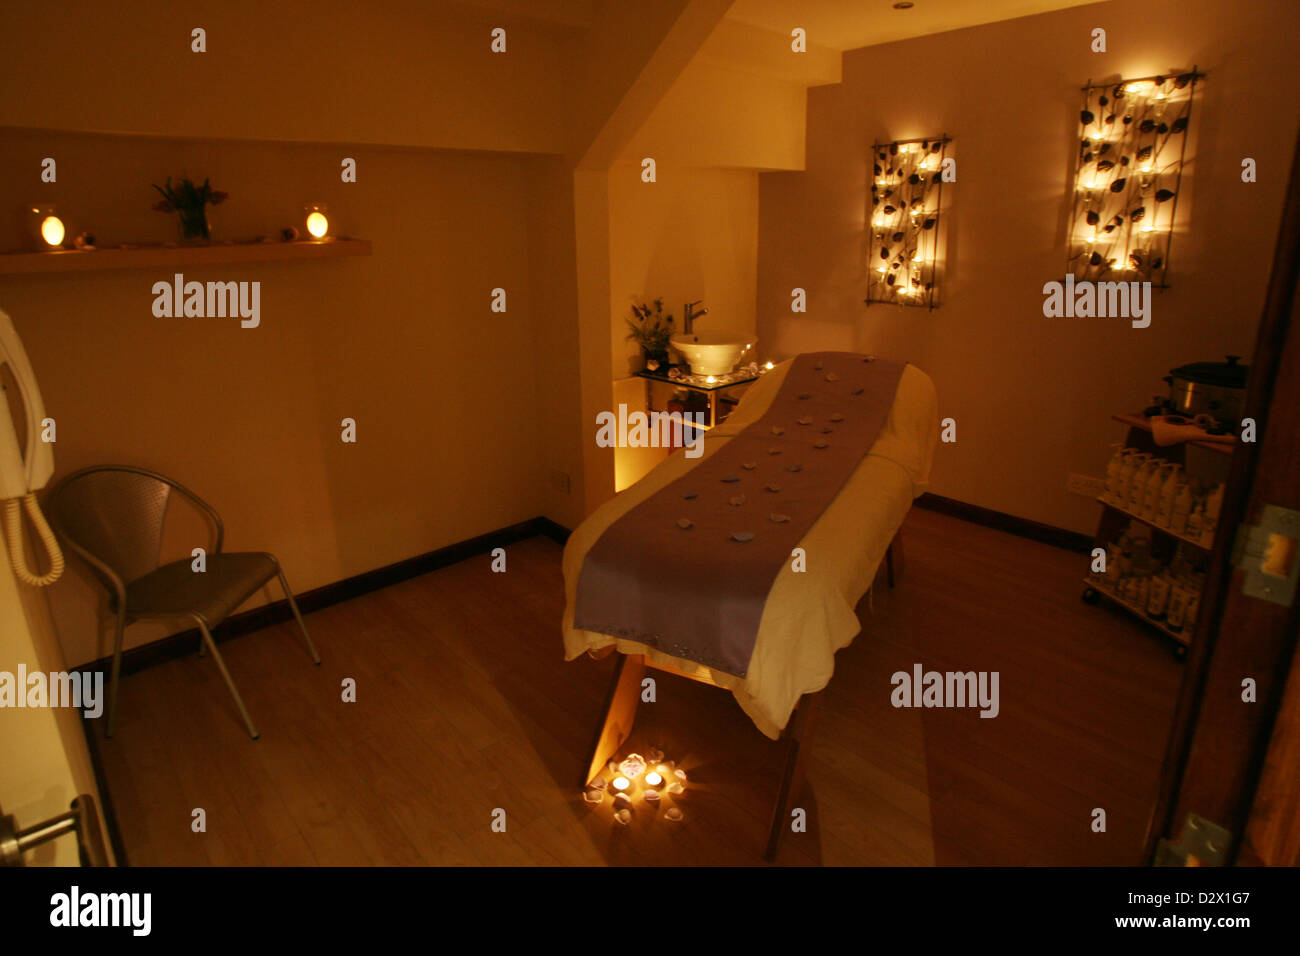 Aroma Spa Room Color ~ A massage and aromatherapy room at modern beauty salon